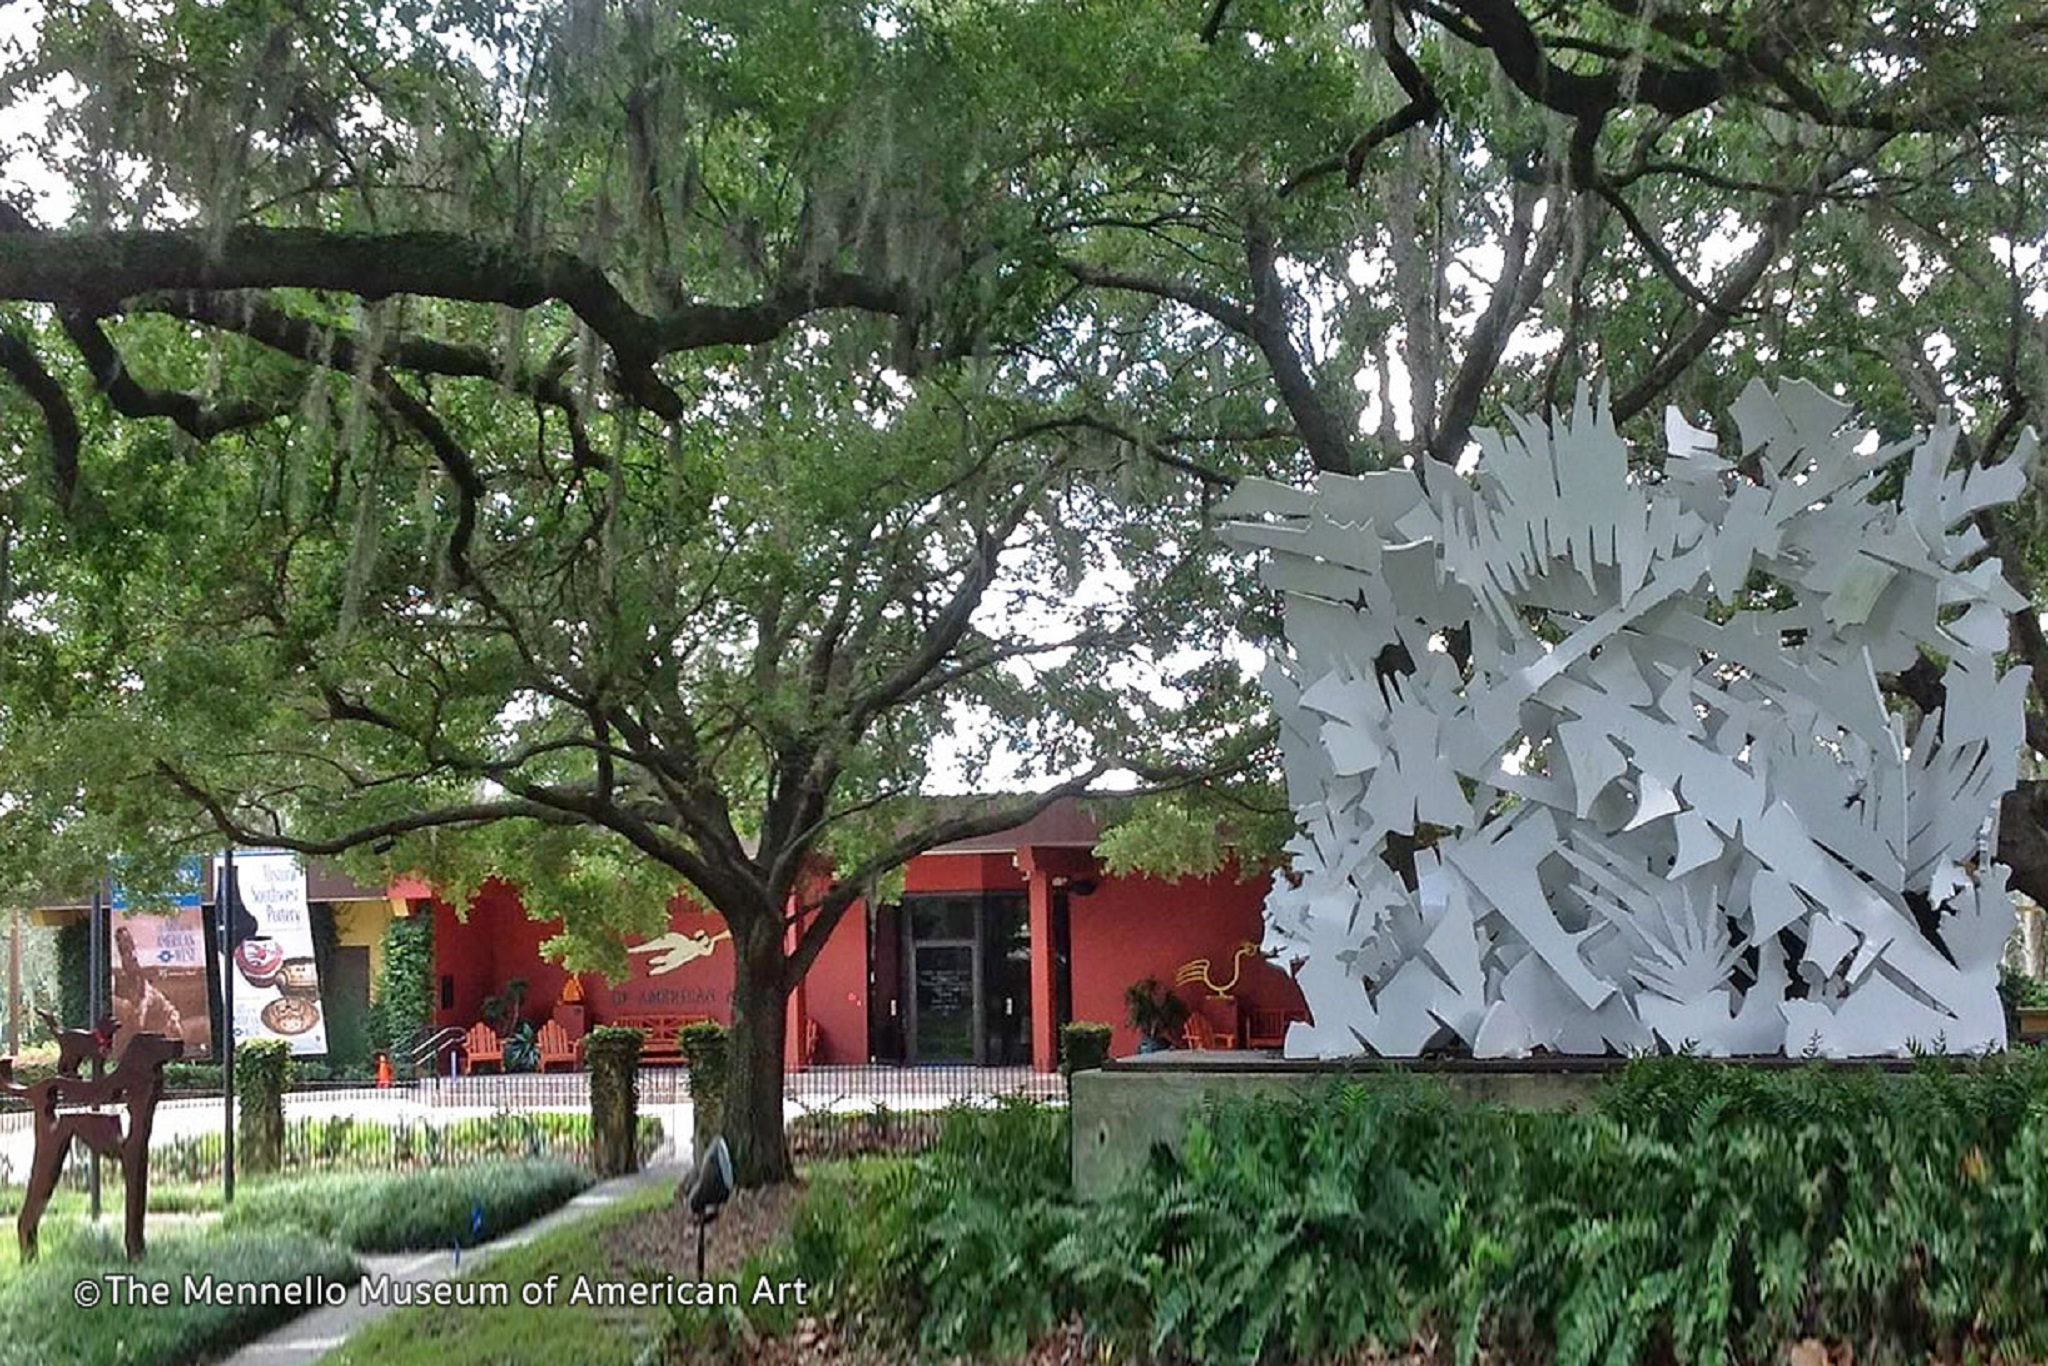 The-Mennello-Museum-of-American-Art-11